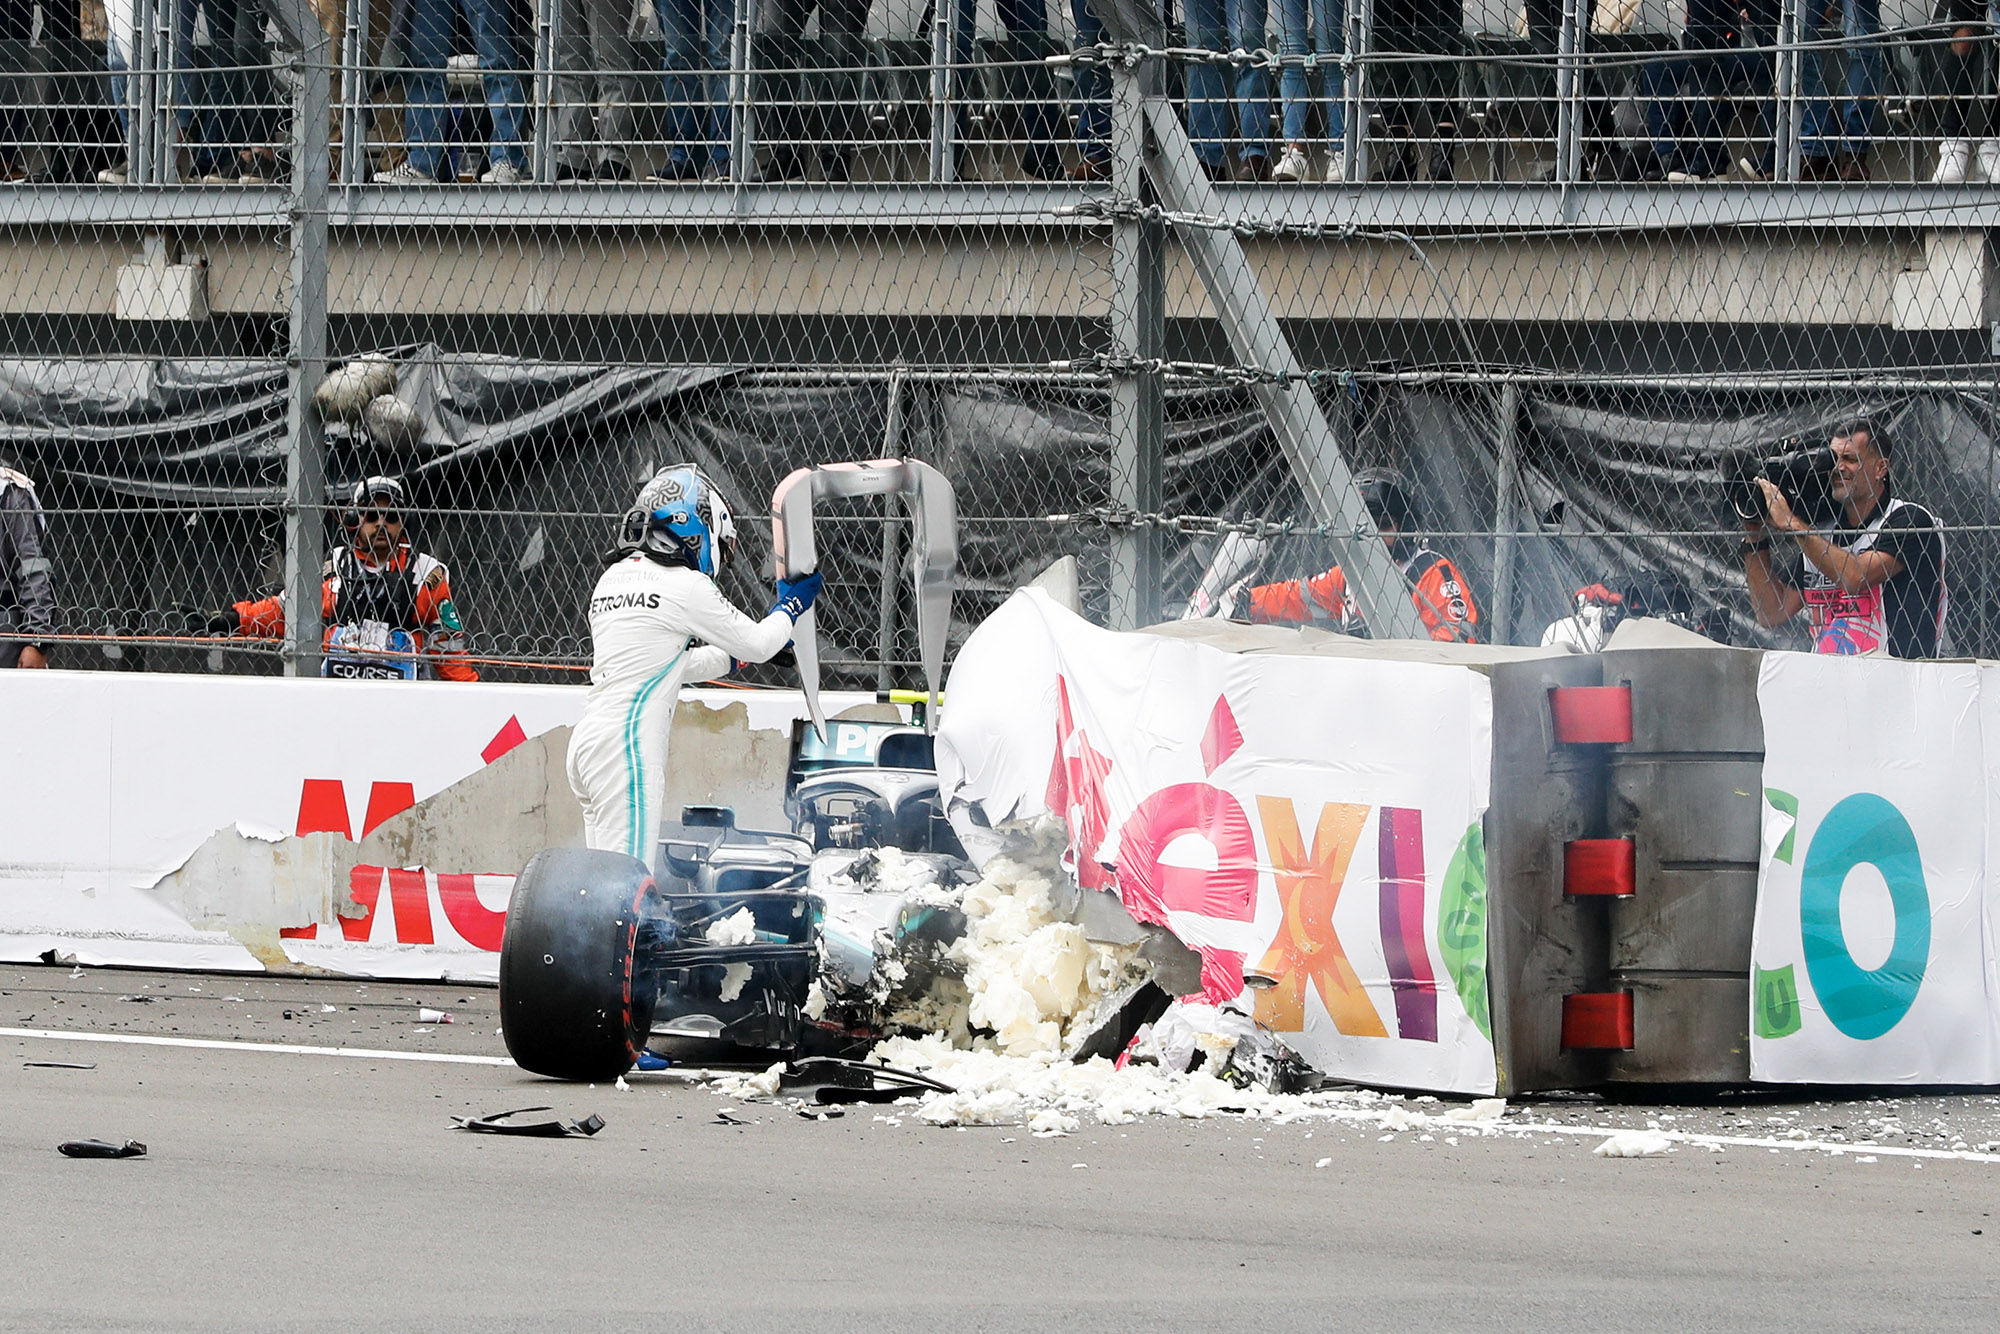 Valtteri Bottas gets out of his car after crashing during qualifying for the 2019 F1 Mexican Grand Prix